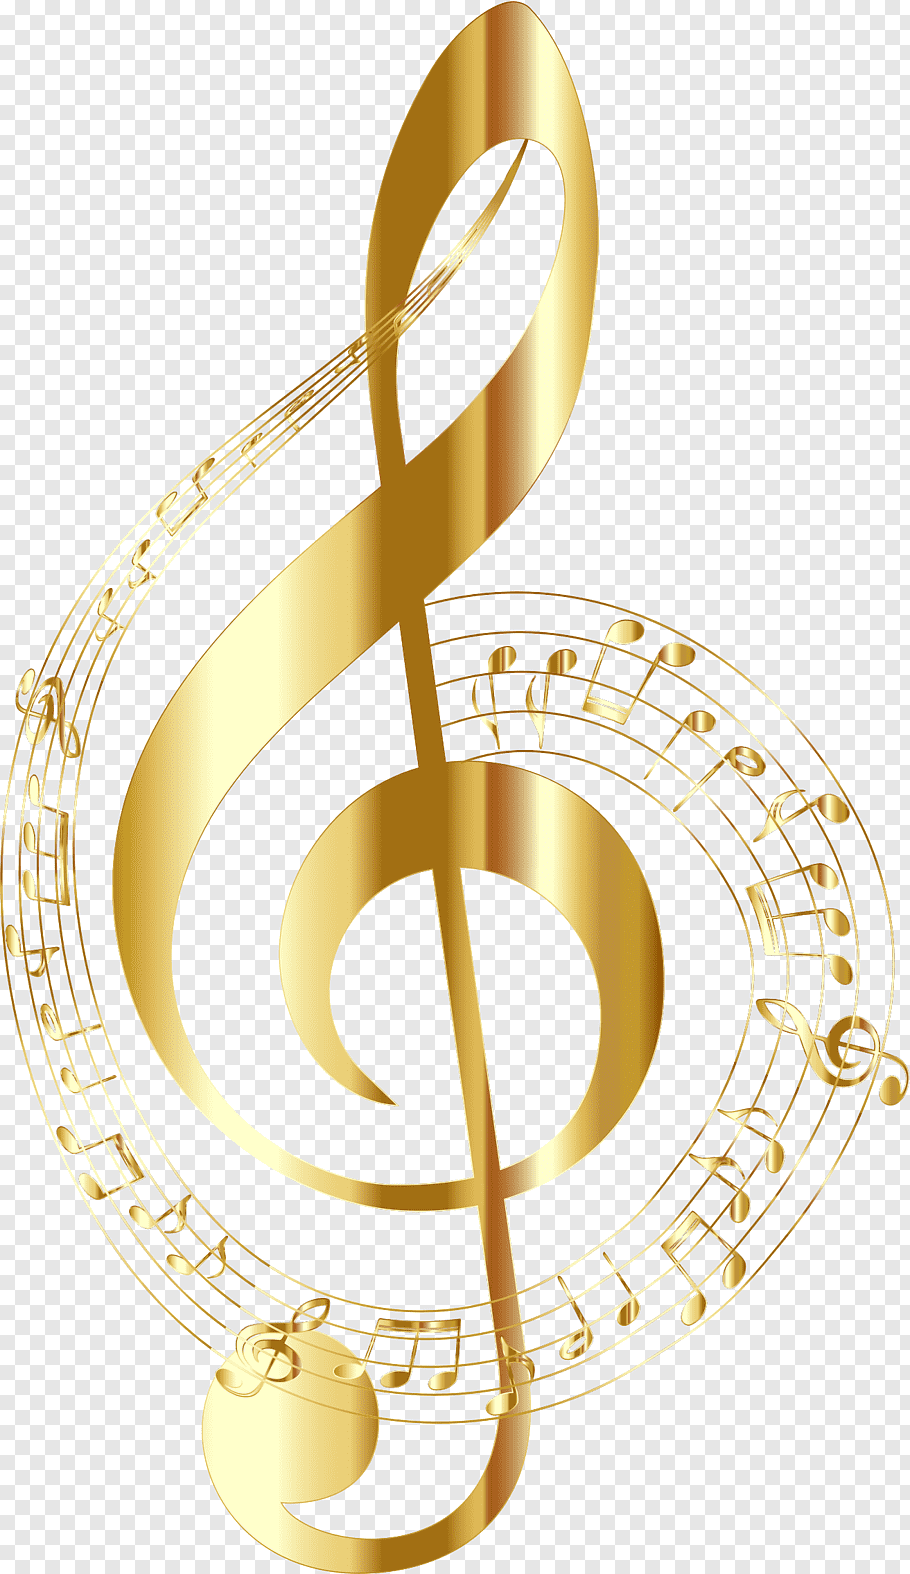 Gold g clef illustration, Musical note Staff Clef, musical.